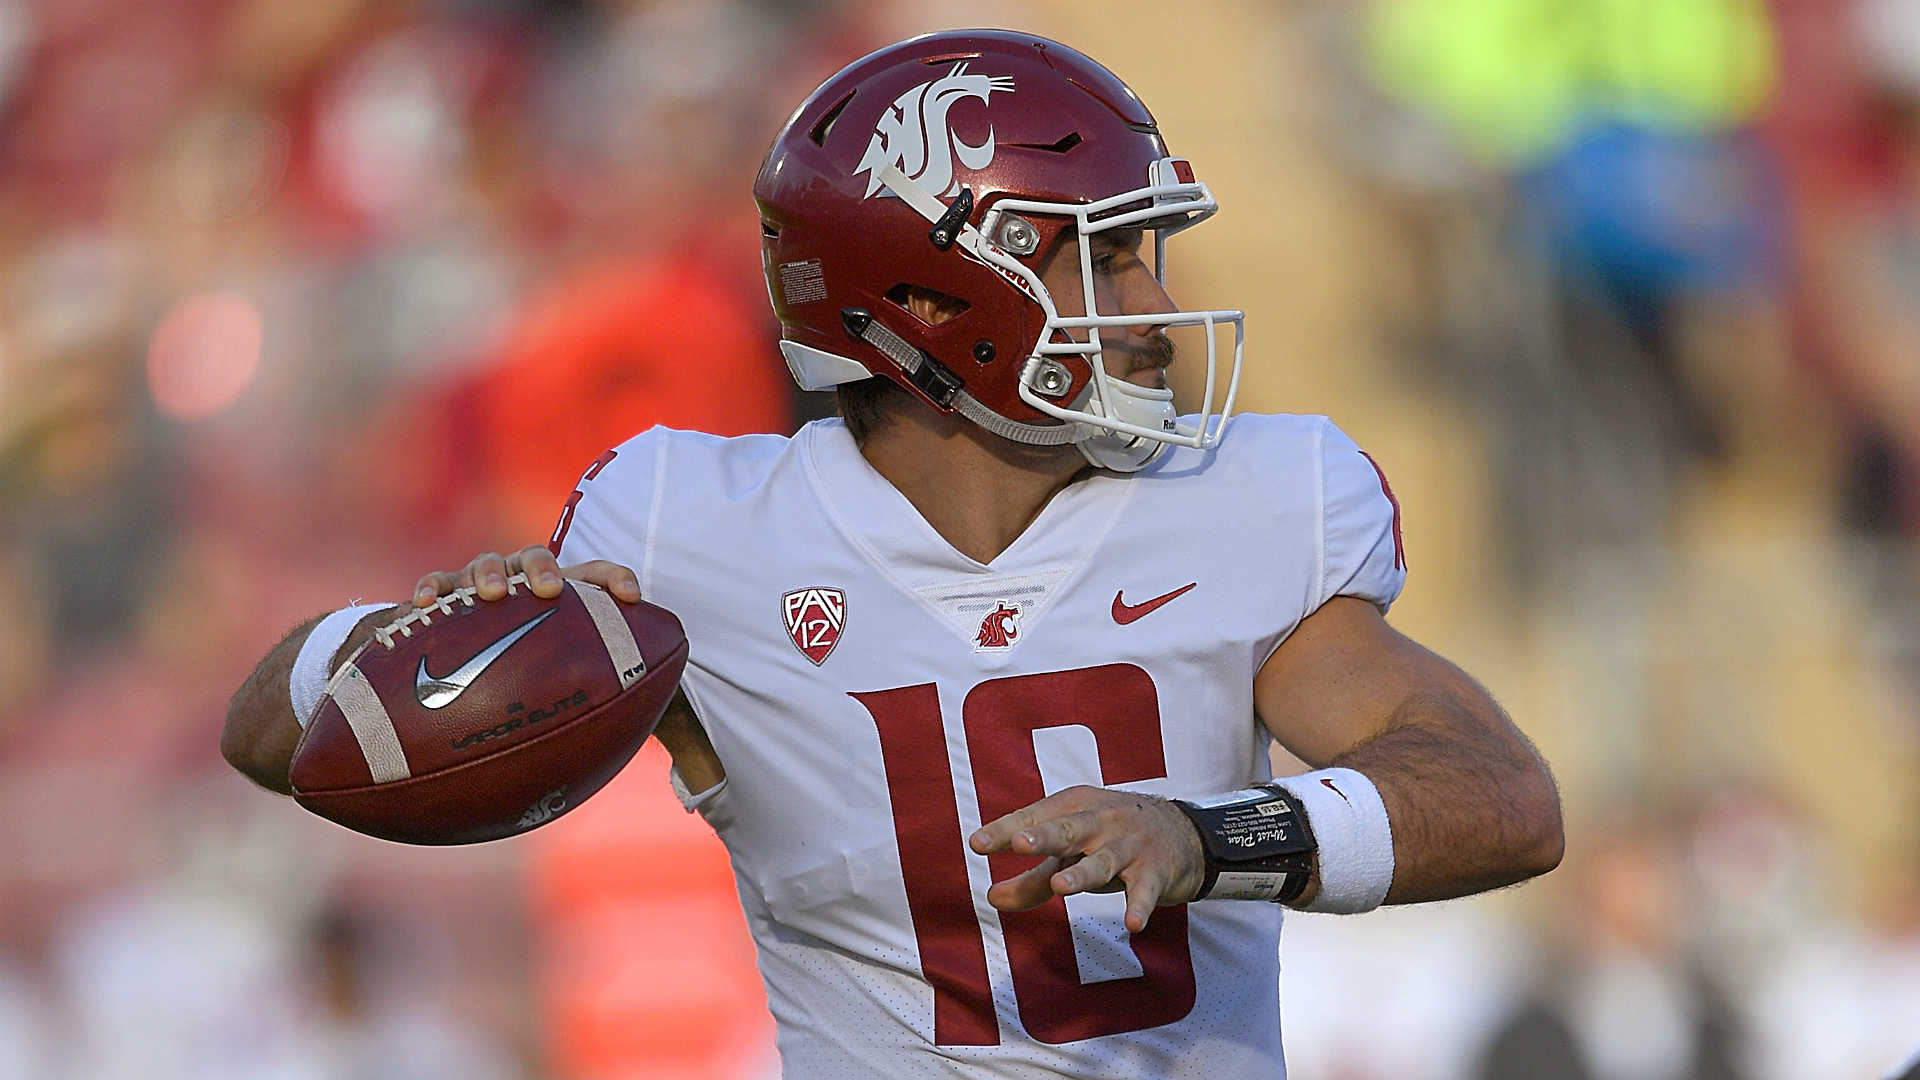 College football schedule: Week 13 TV coverage for top 25 games